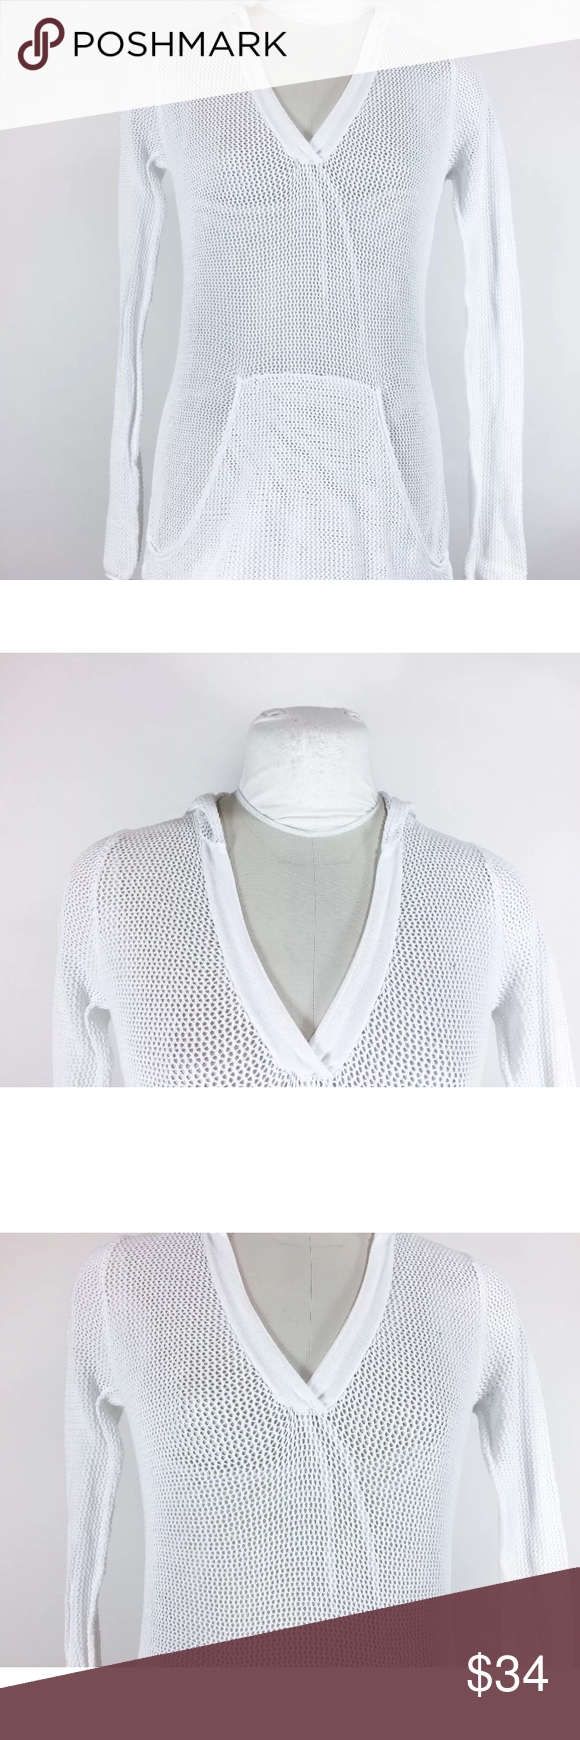 "Cabi White Knit Sweater V Neck Hood Pocket Cabi White Knit Sweater V Neck Hood Front Pocket Crochet Sweatshirt Style Sz XS   Measurements- Taken Flat   Pit to pit (doubled)- 42""   Length- Top of Shoulder to Bottom Hem- 26""    Sleeve length- Shoulder Seam to Cuff- 28""    Width at hem (doubled)- 40""   Please note the ""strings"" in front are from the mannequin.  Please check your measurements before purchasing! Looks great- no flaws.   Bin#31 CAbi Sweaters"